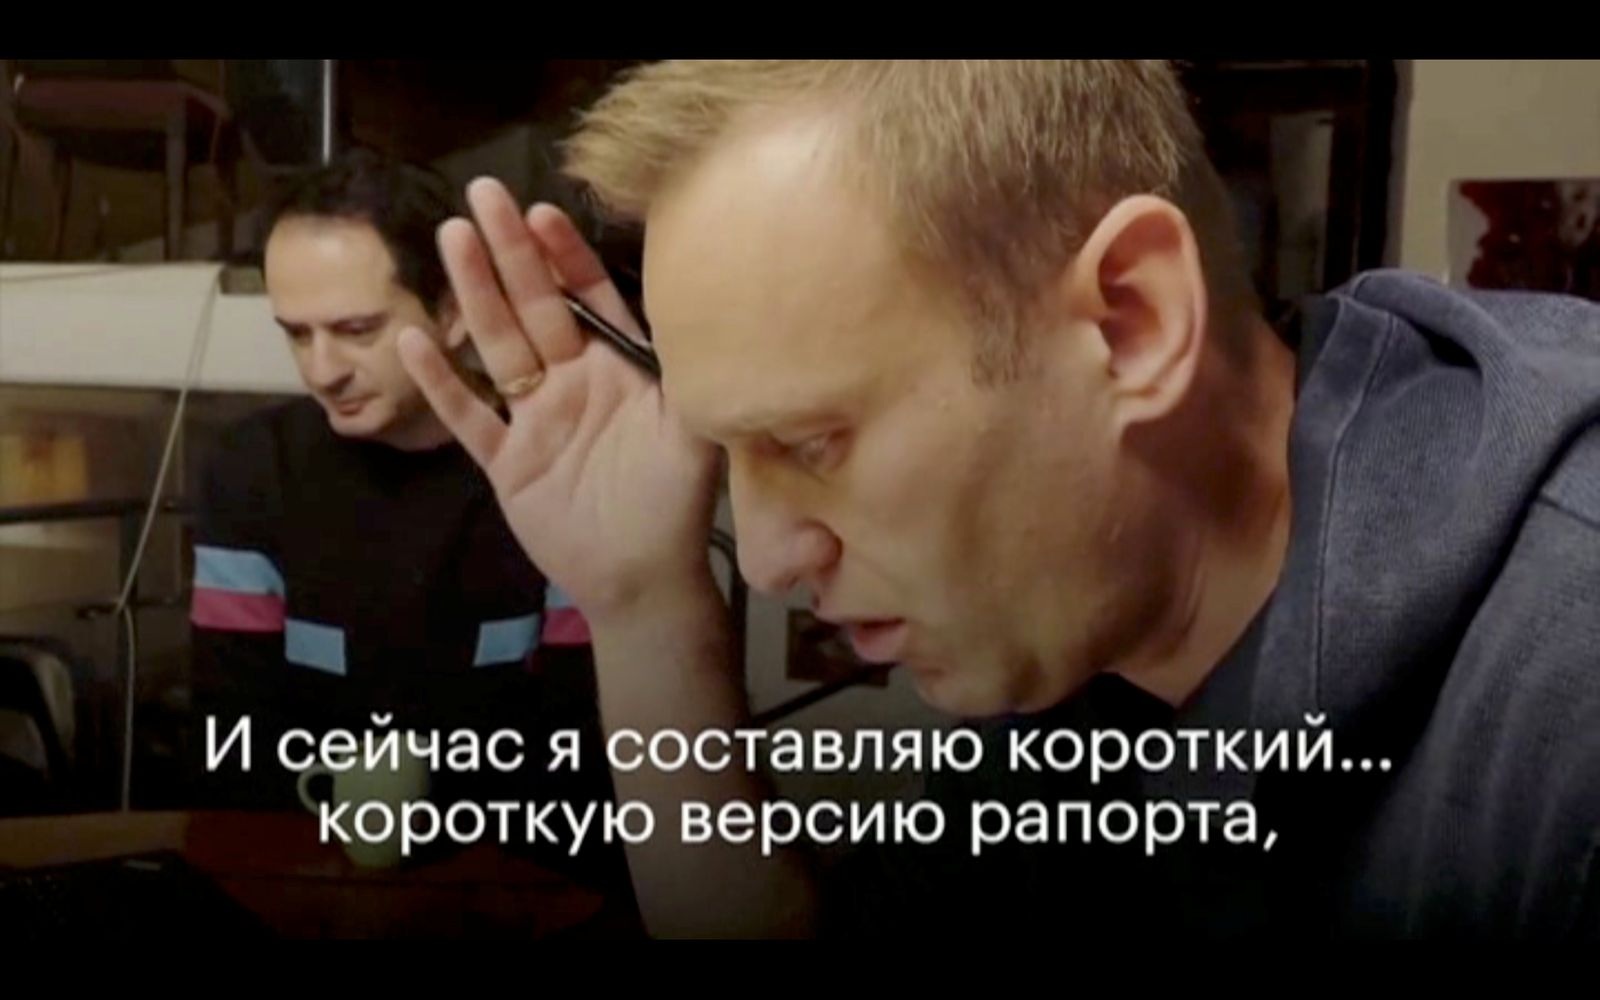 Russian opposition politician Alexei Navalny is seen during a phone call to trick a secret agent